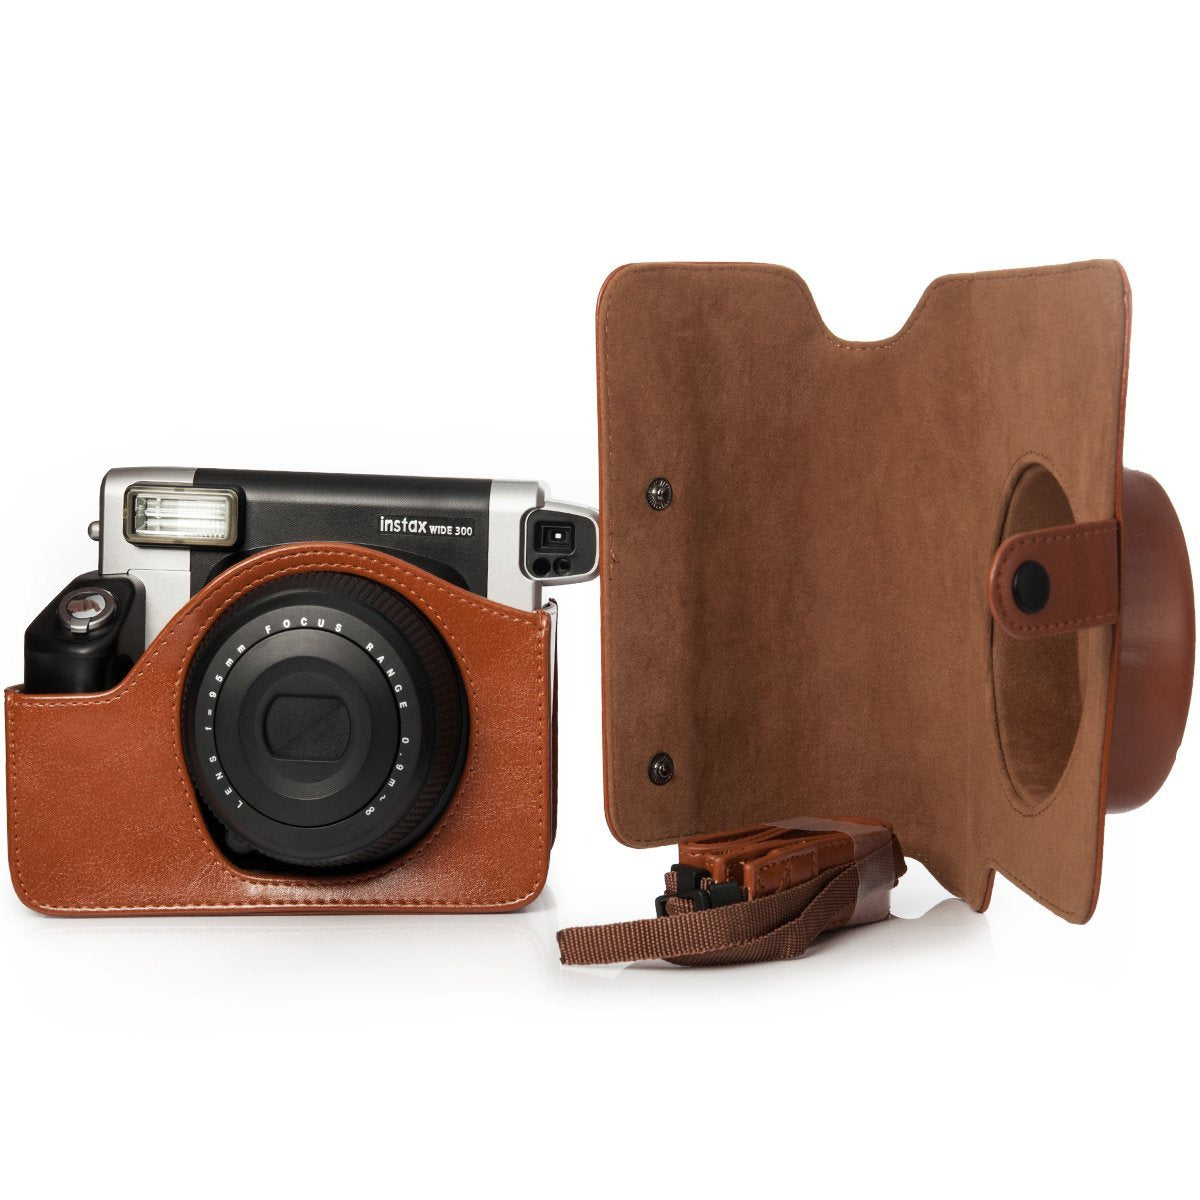 ZENKO WIDE 300 INSTAX CAMERA COVER POUCH BAG ( BROWN)